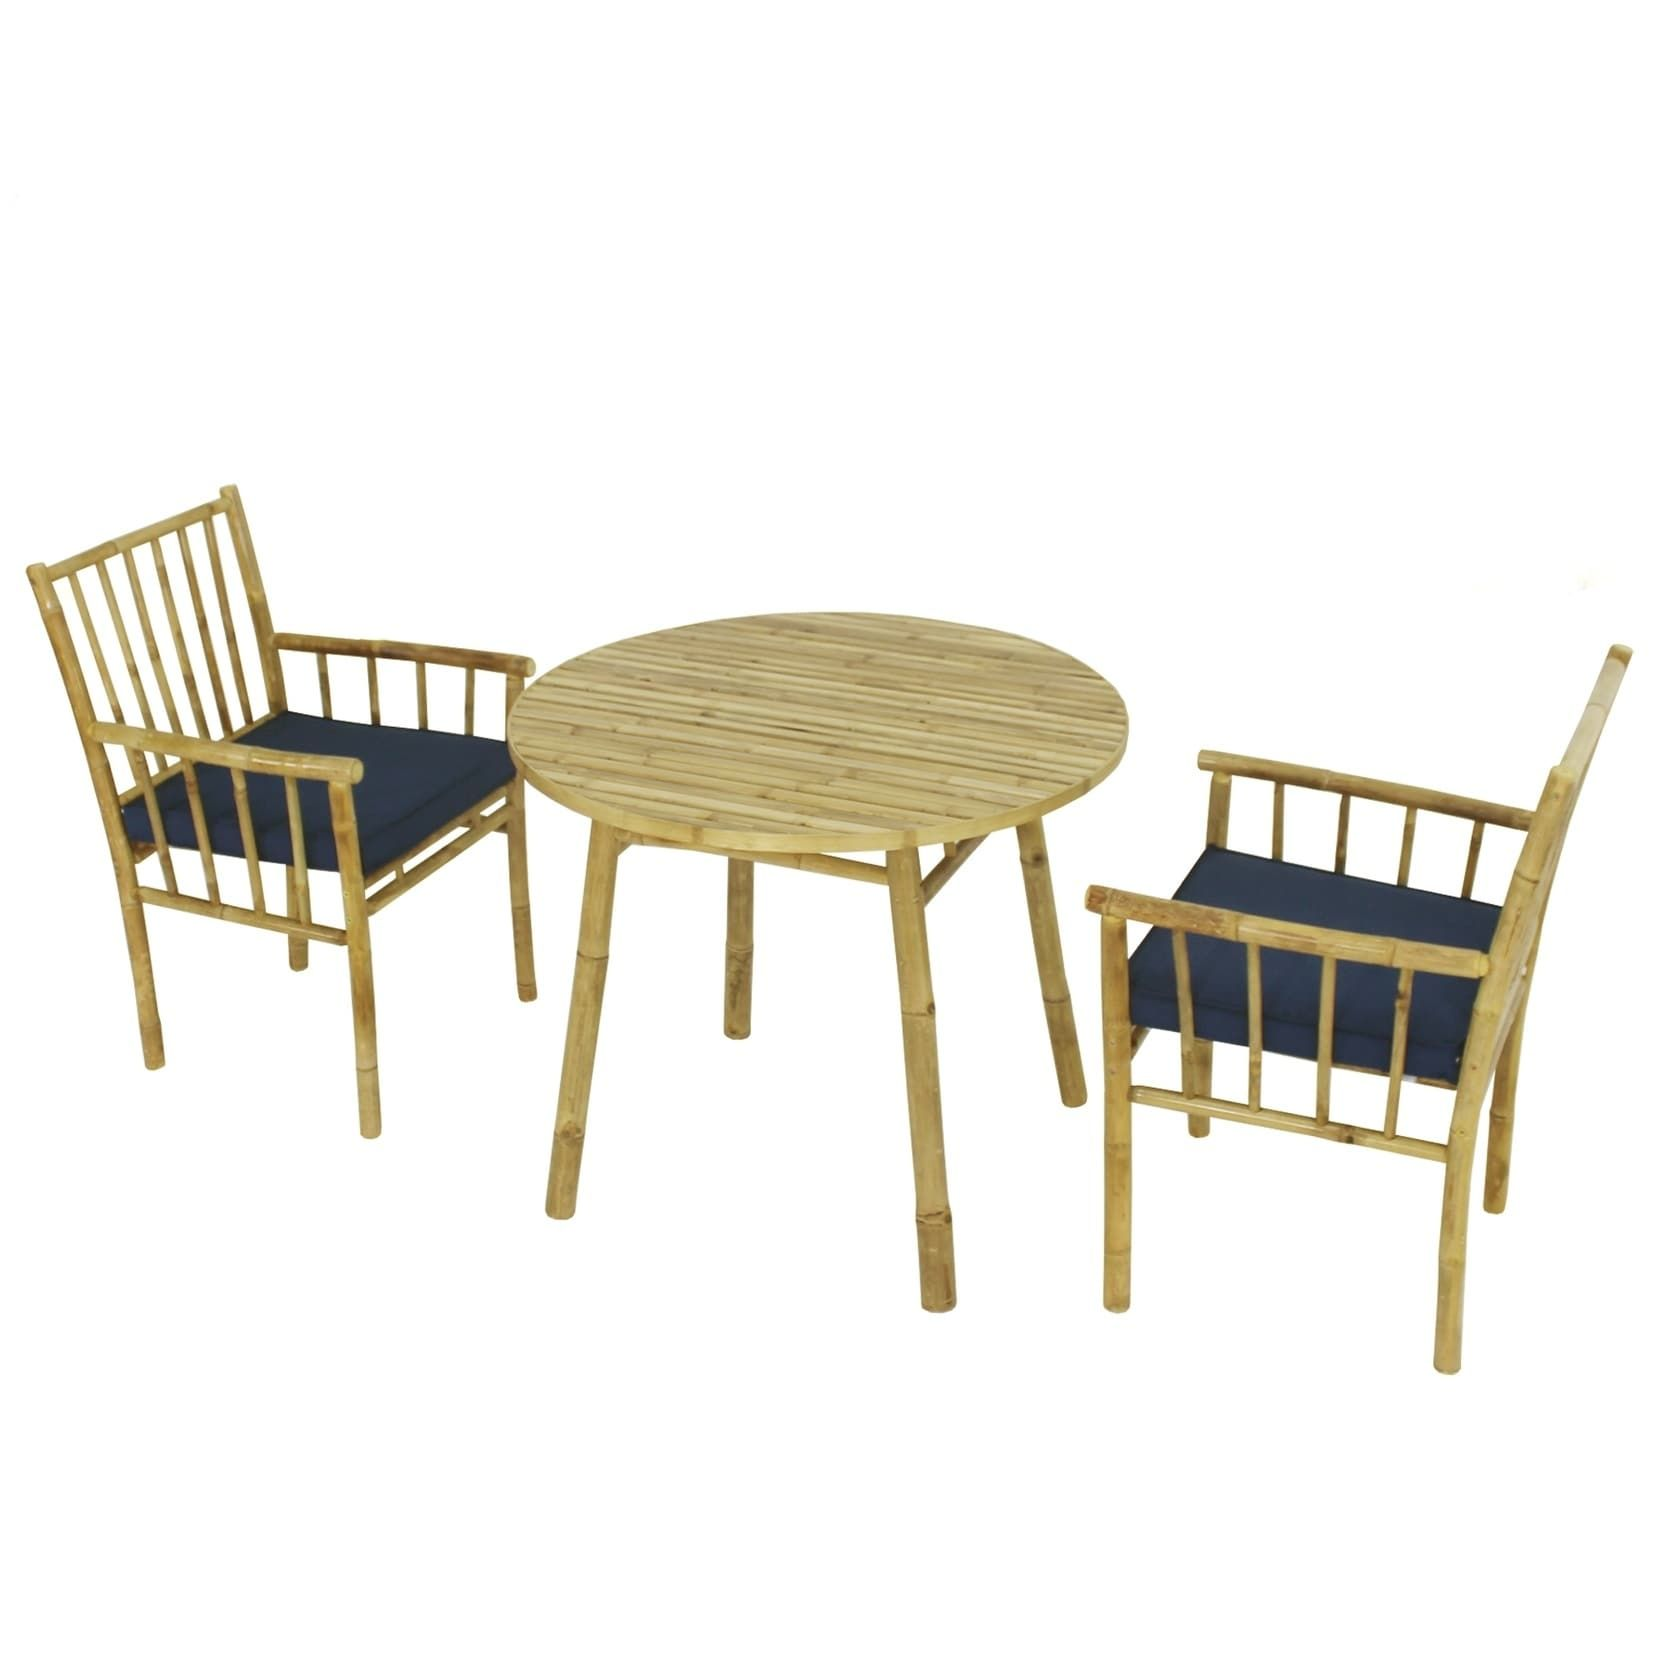 Dining Set Of 2 Armchairs With Cushions And Accent Round Table